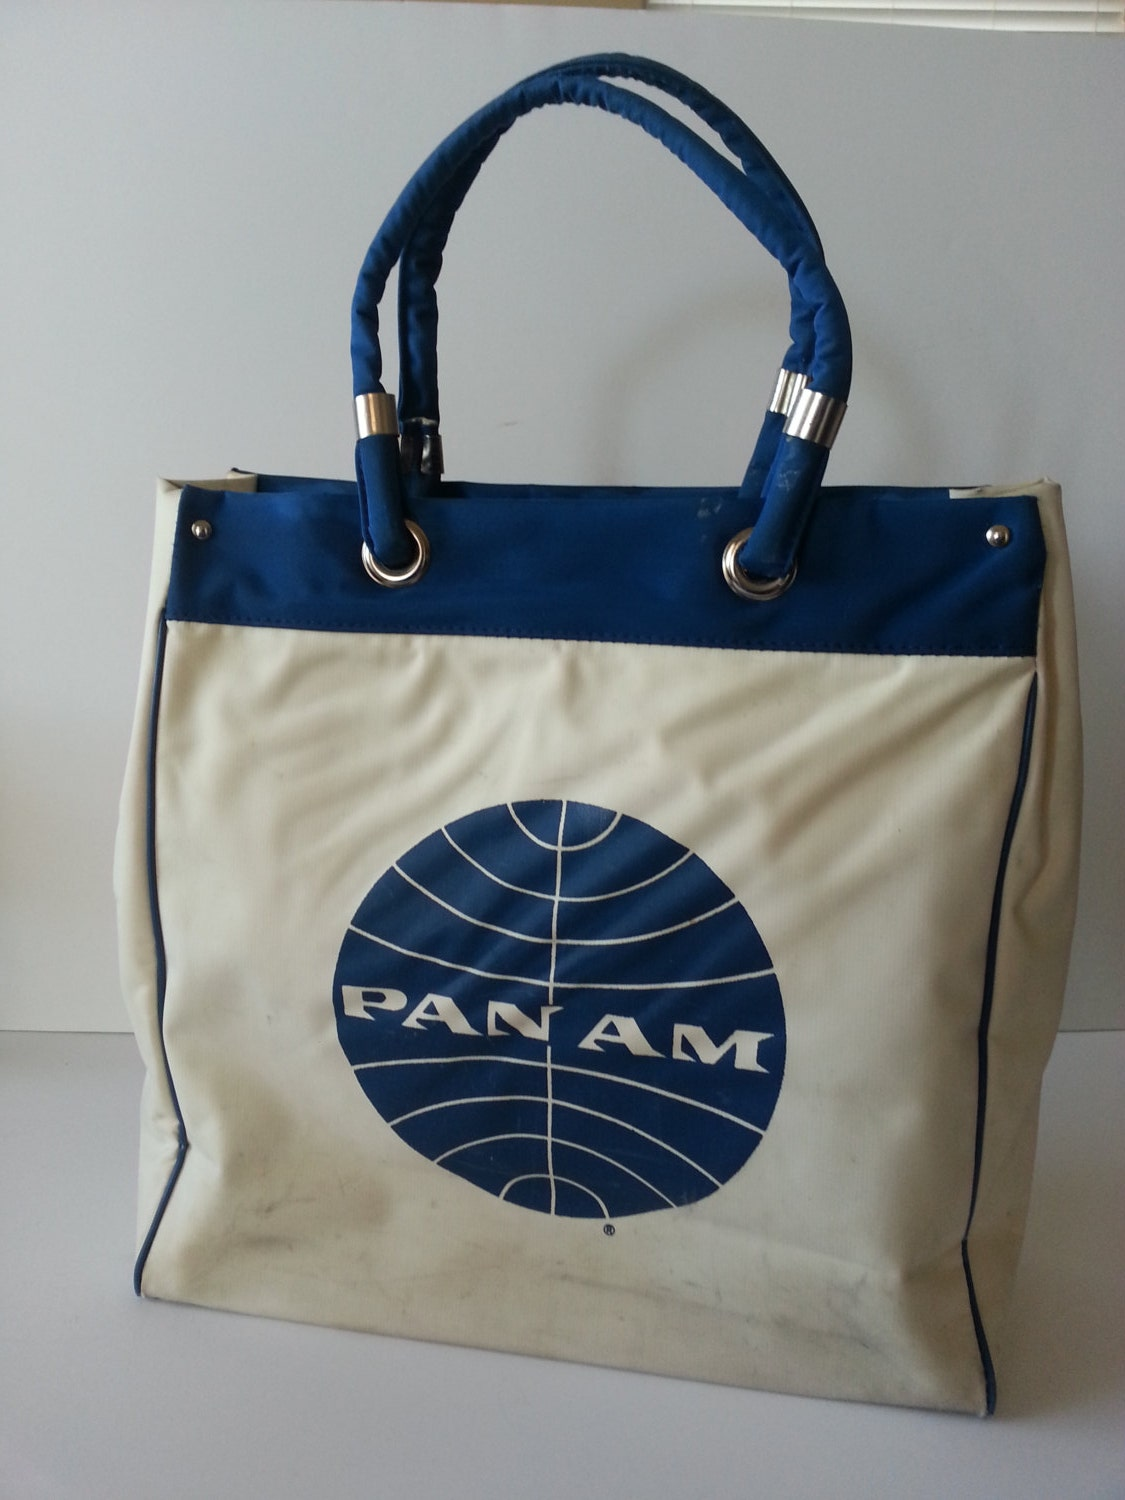 vintage airline tote luggage carry on bag pan am by spotteddog1. Black Bedroom Furniture Sets. Home Design Ideas